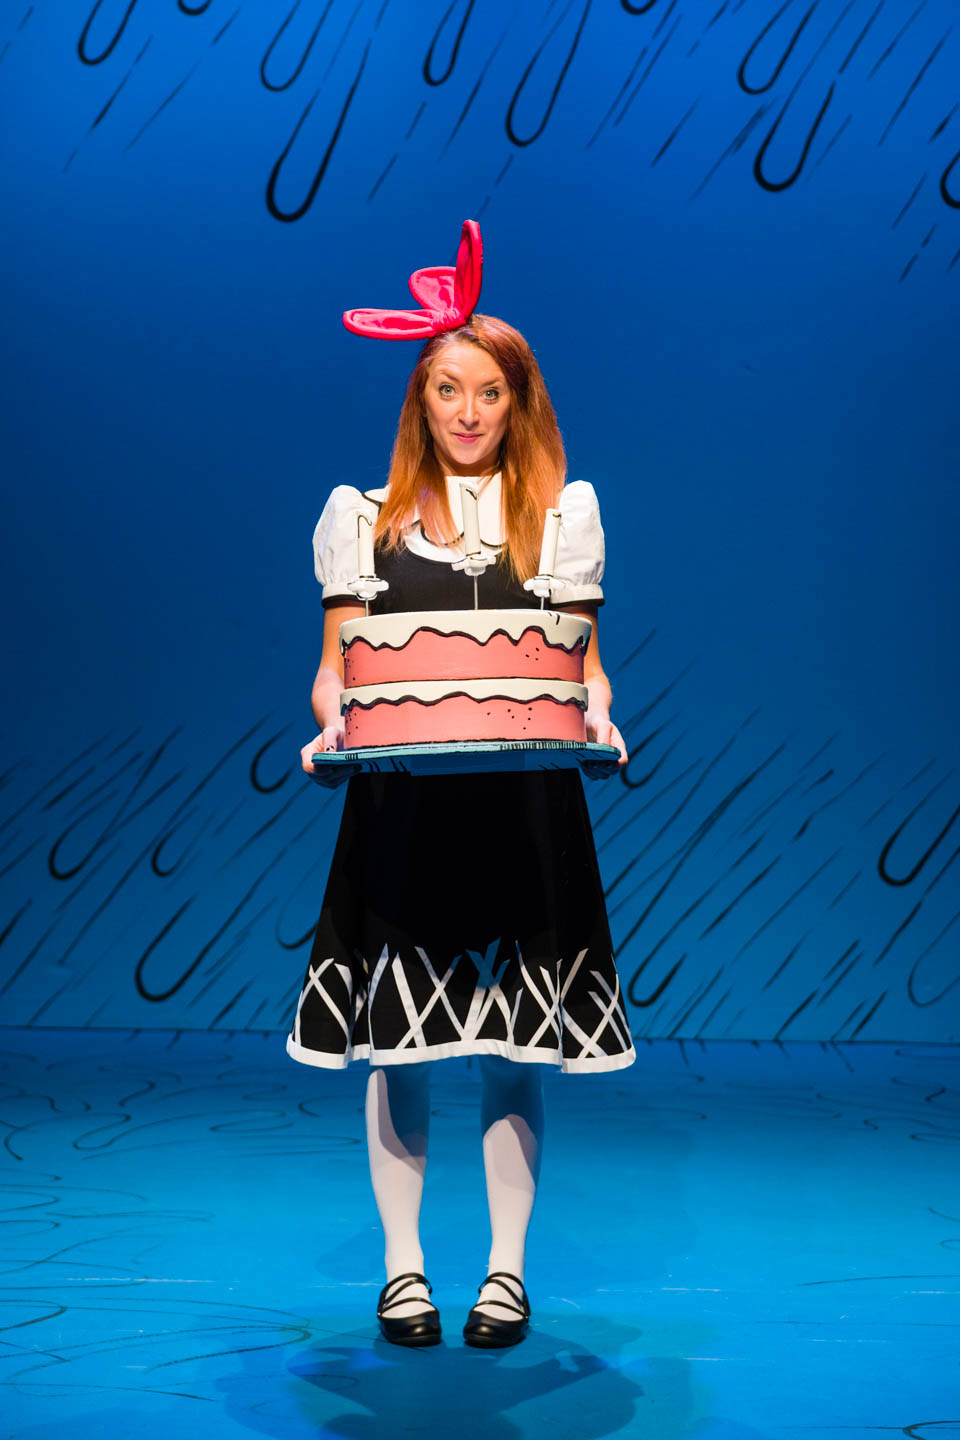 Sally Walden from Cat in the Hat